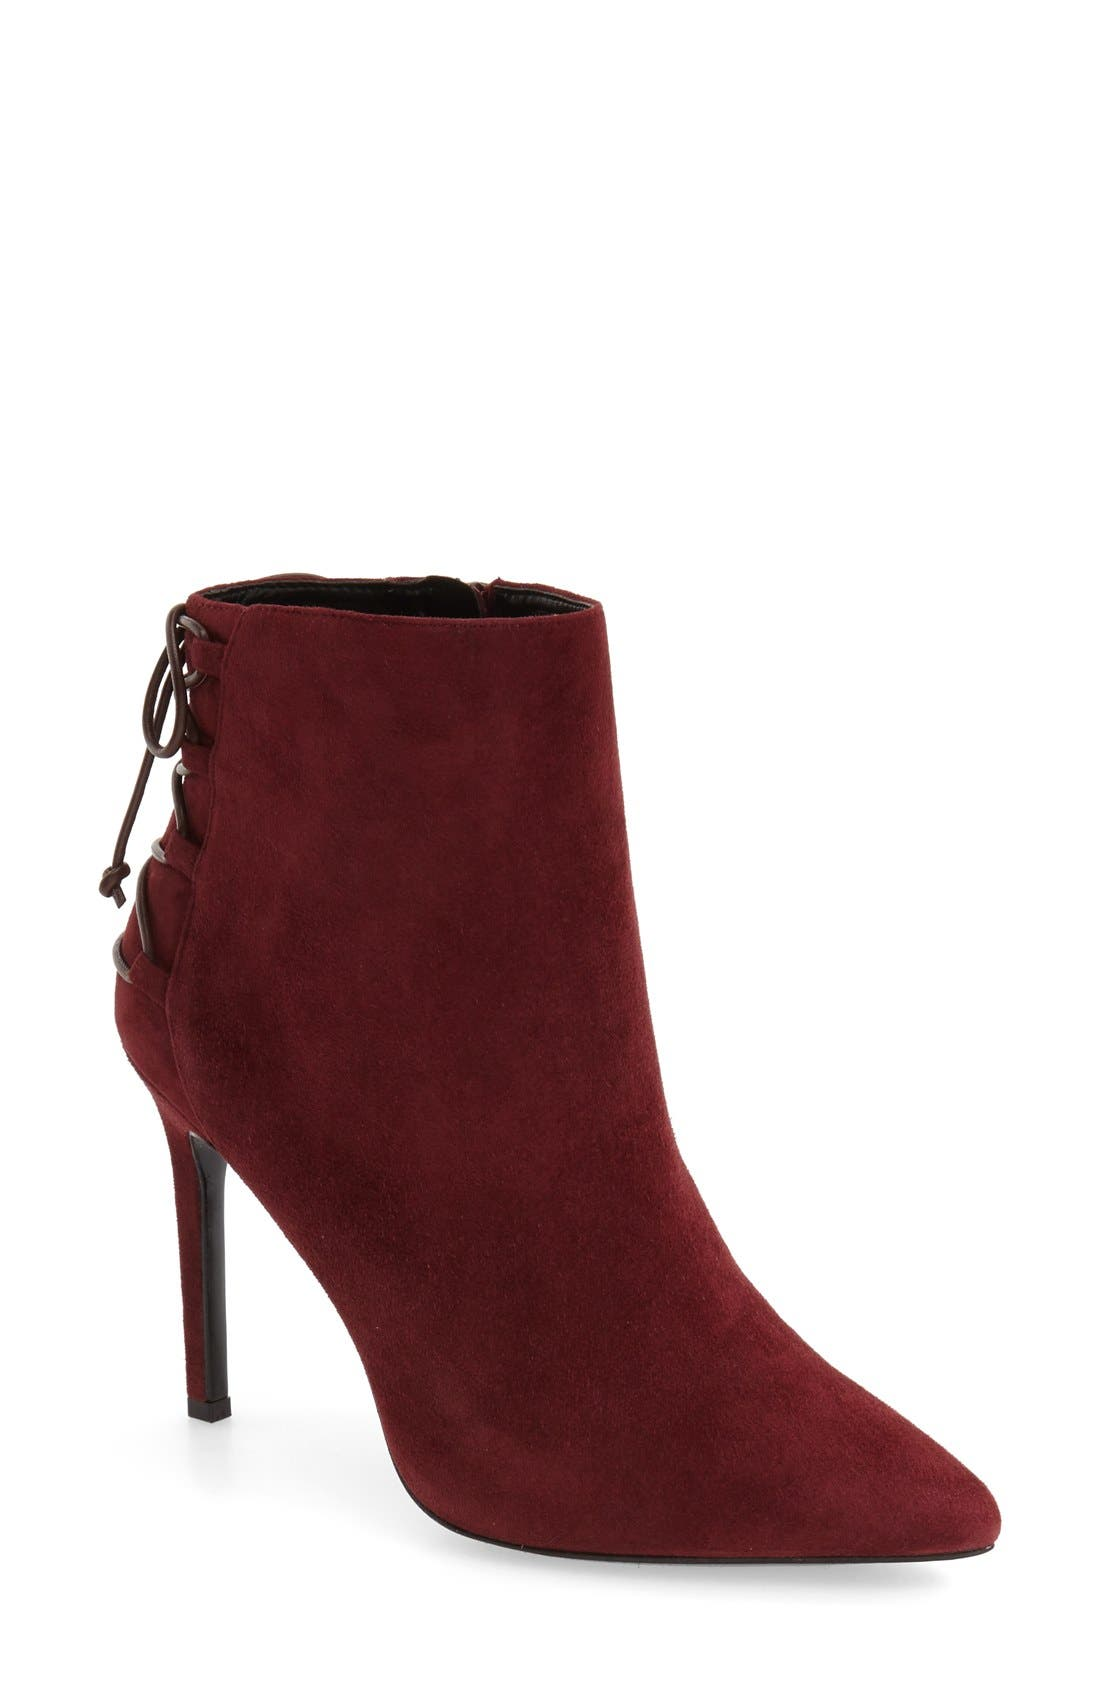 Main Image - Charles David 'Catherine' Pointy Toe Bootie (Women)